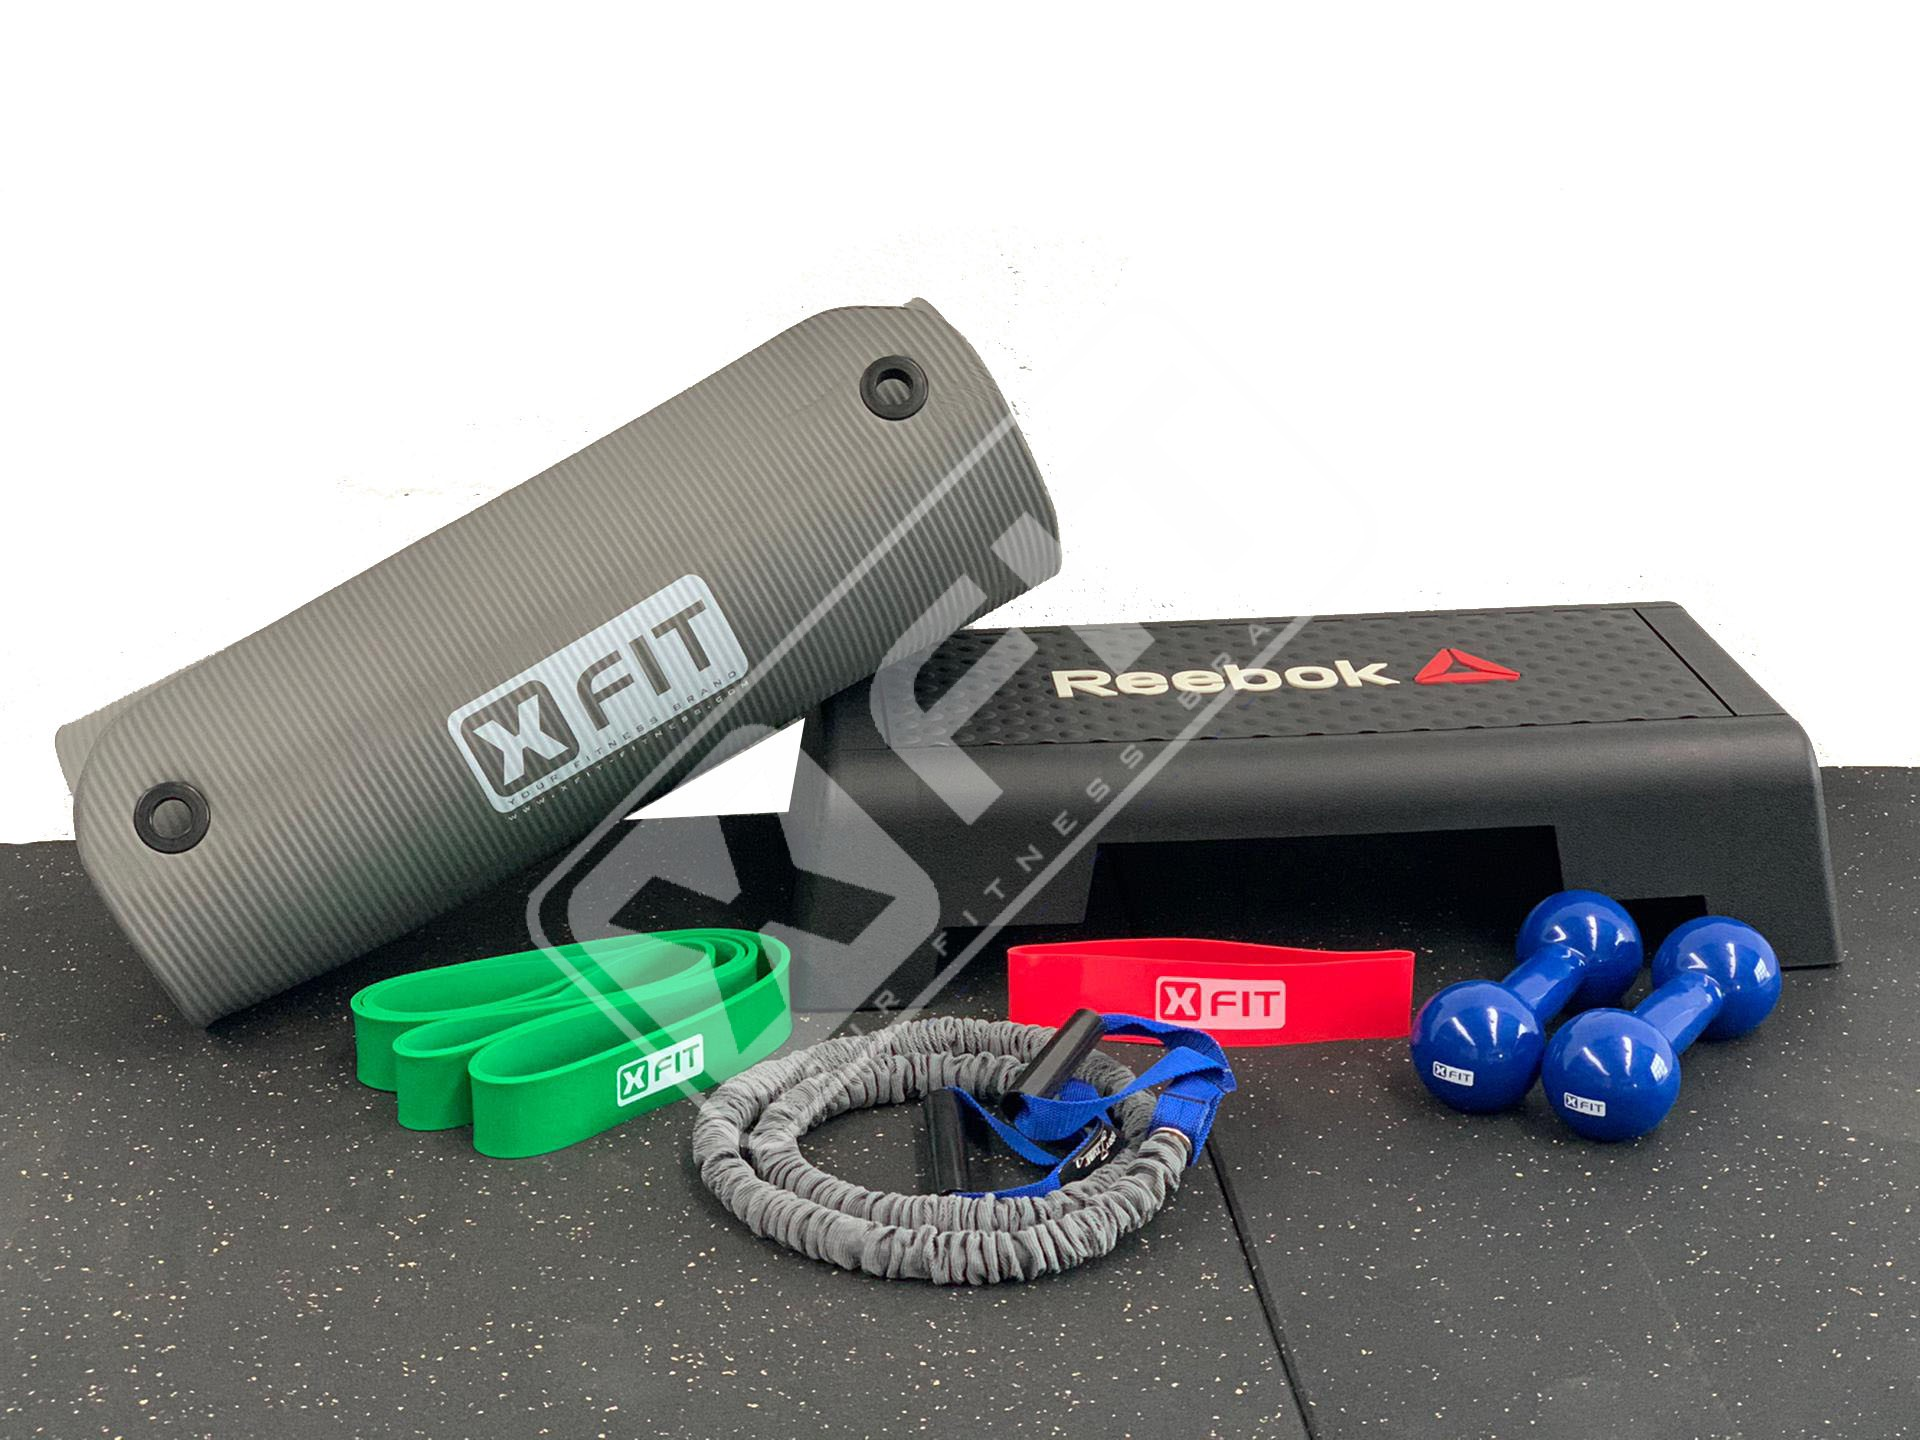 HOME GYM PACKS AVANÇADO